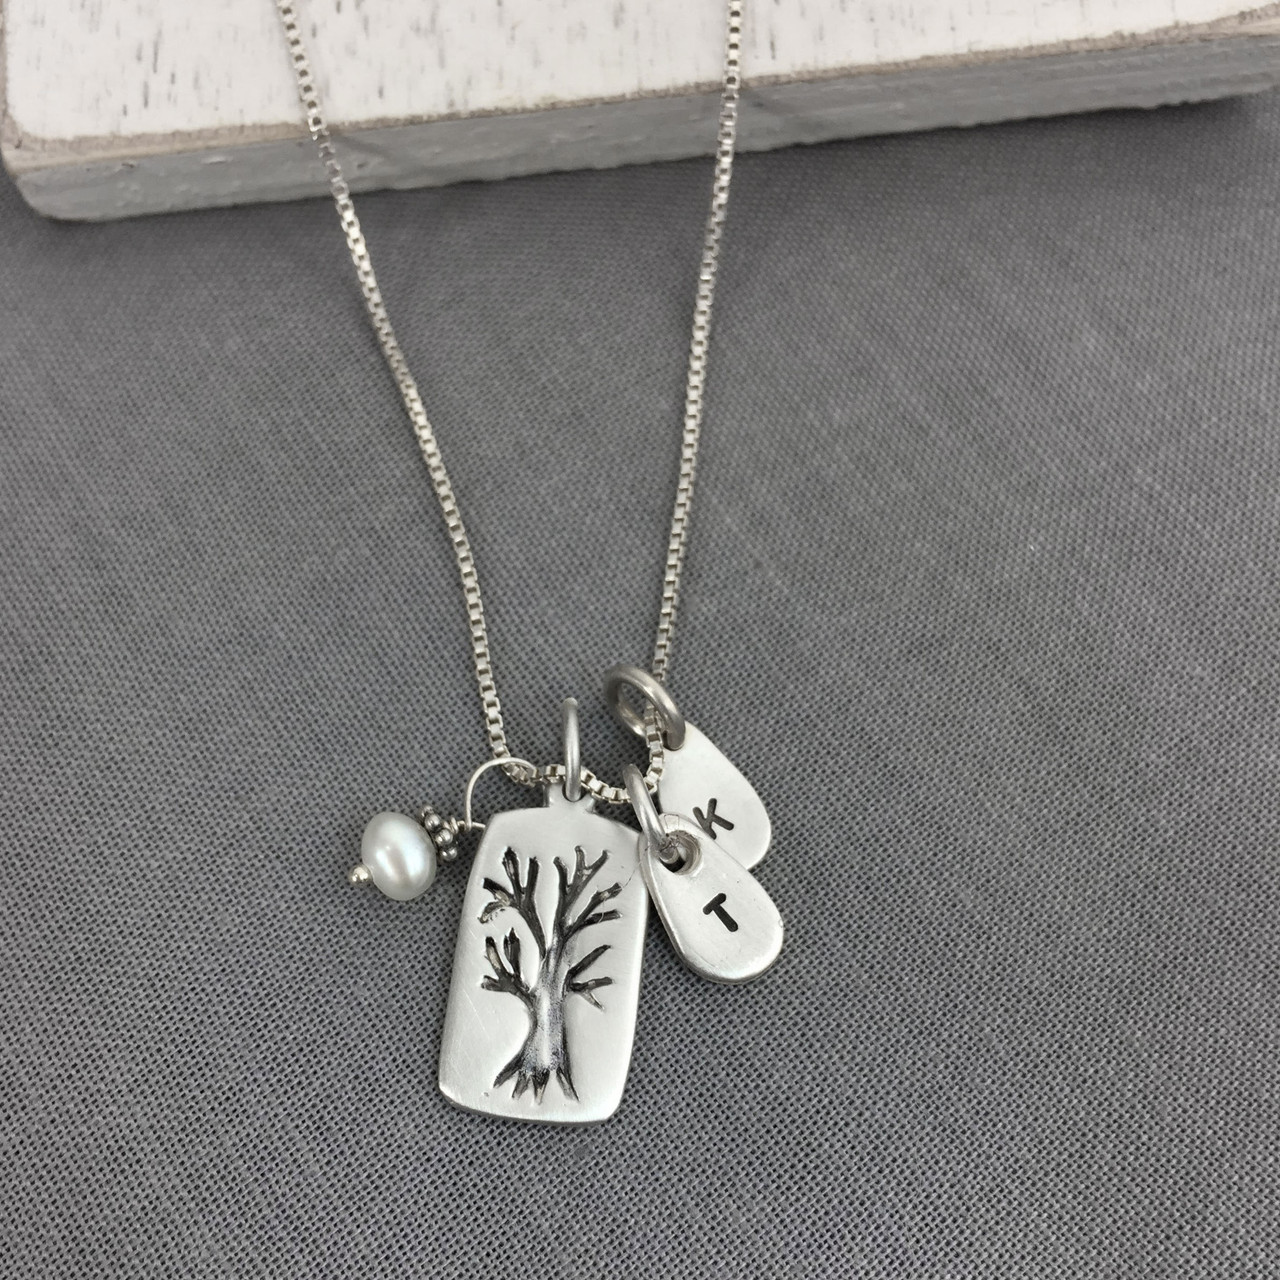 Hand Stamped Family Tree Initials Necklace